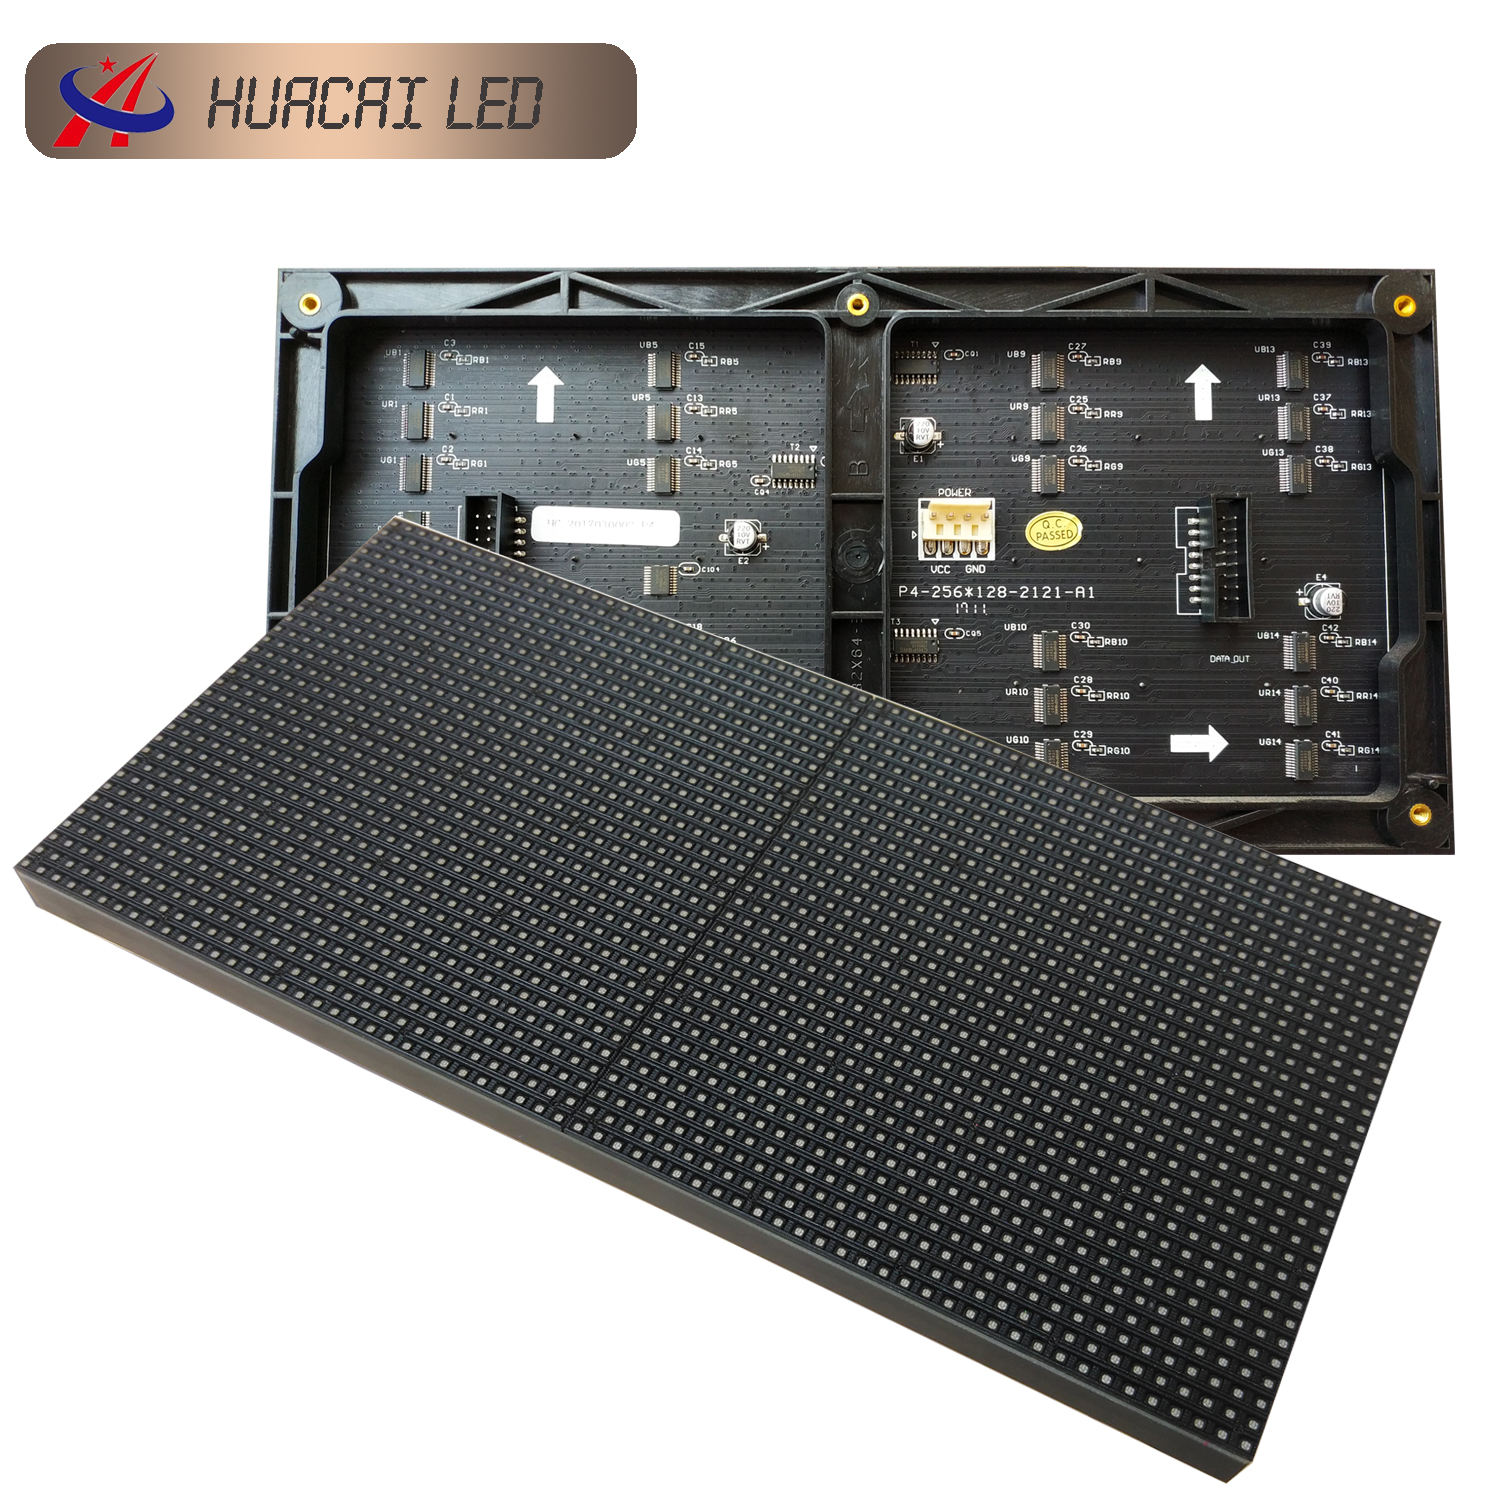 p3 p4 p5 p6 p7.62 smd indoor led display modules video outdoor led billboard p6 p8 p10 LED advertising